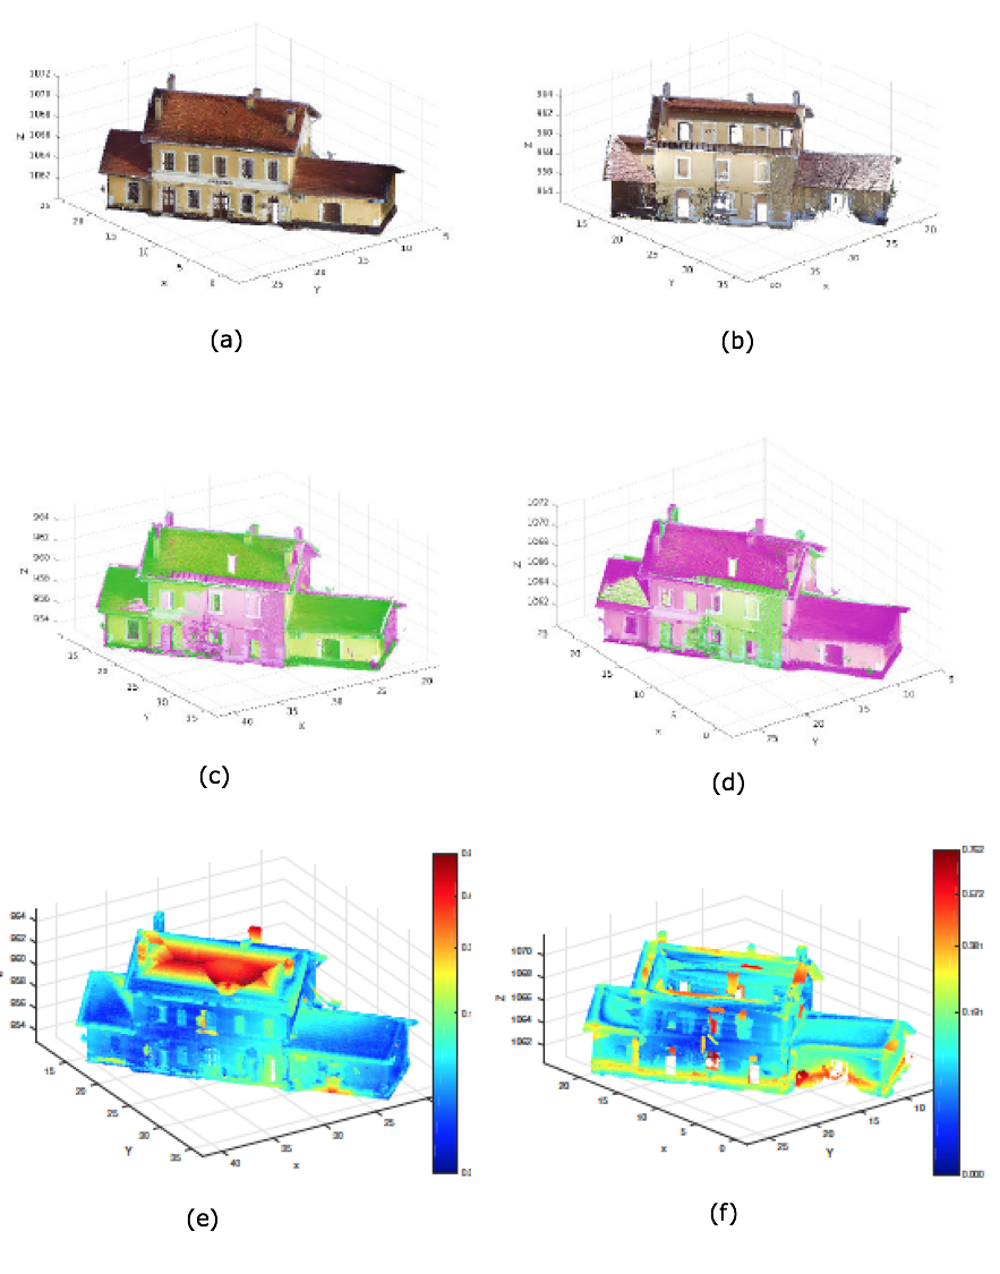 Just Like Faces, Buildings Have Features That Algorithms Can Recognize